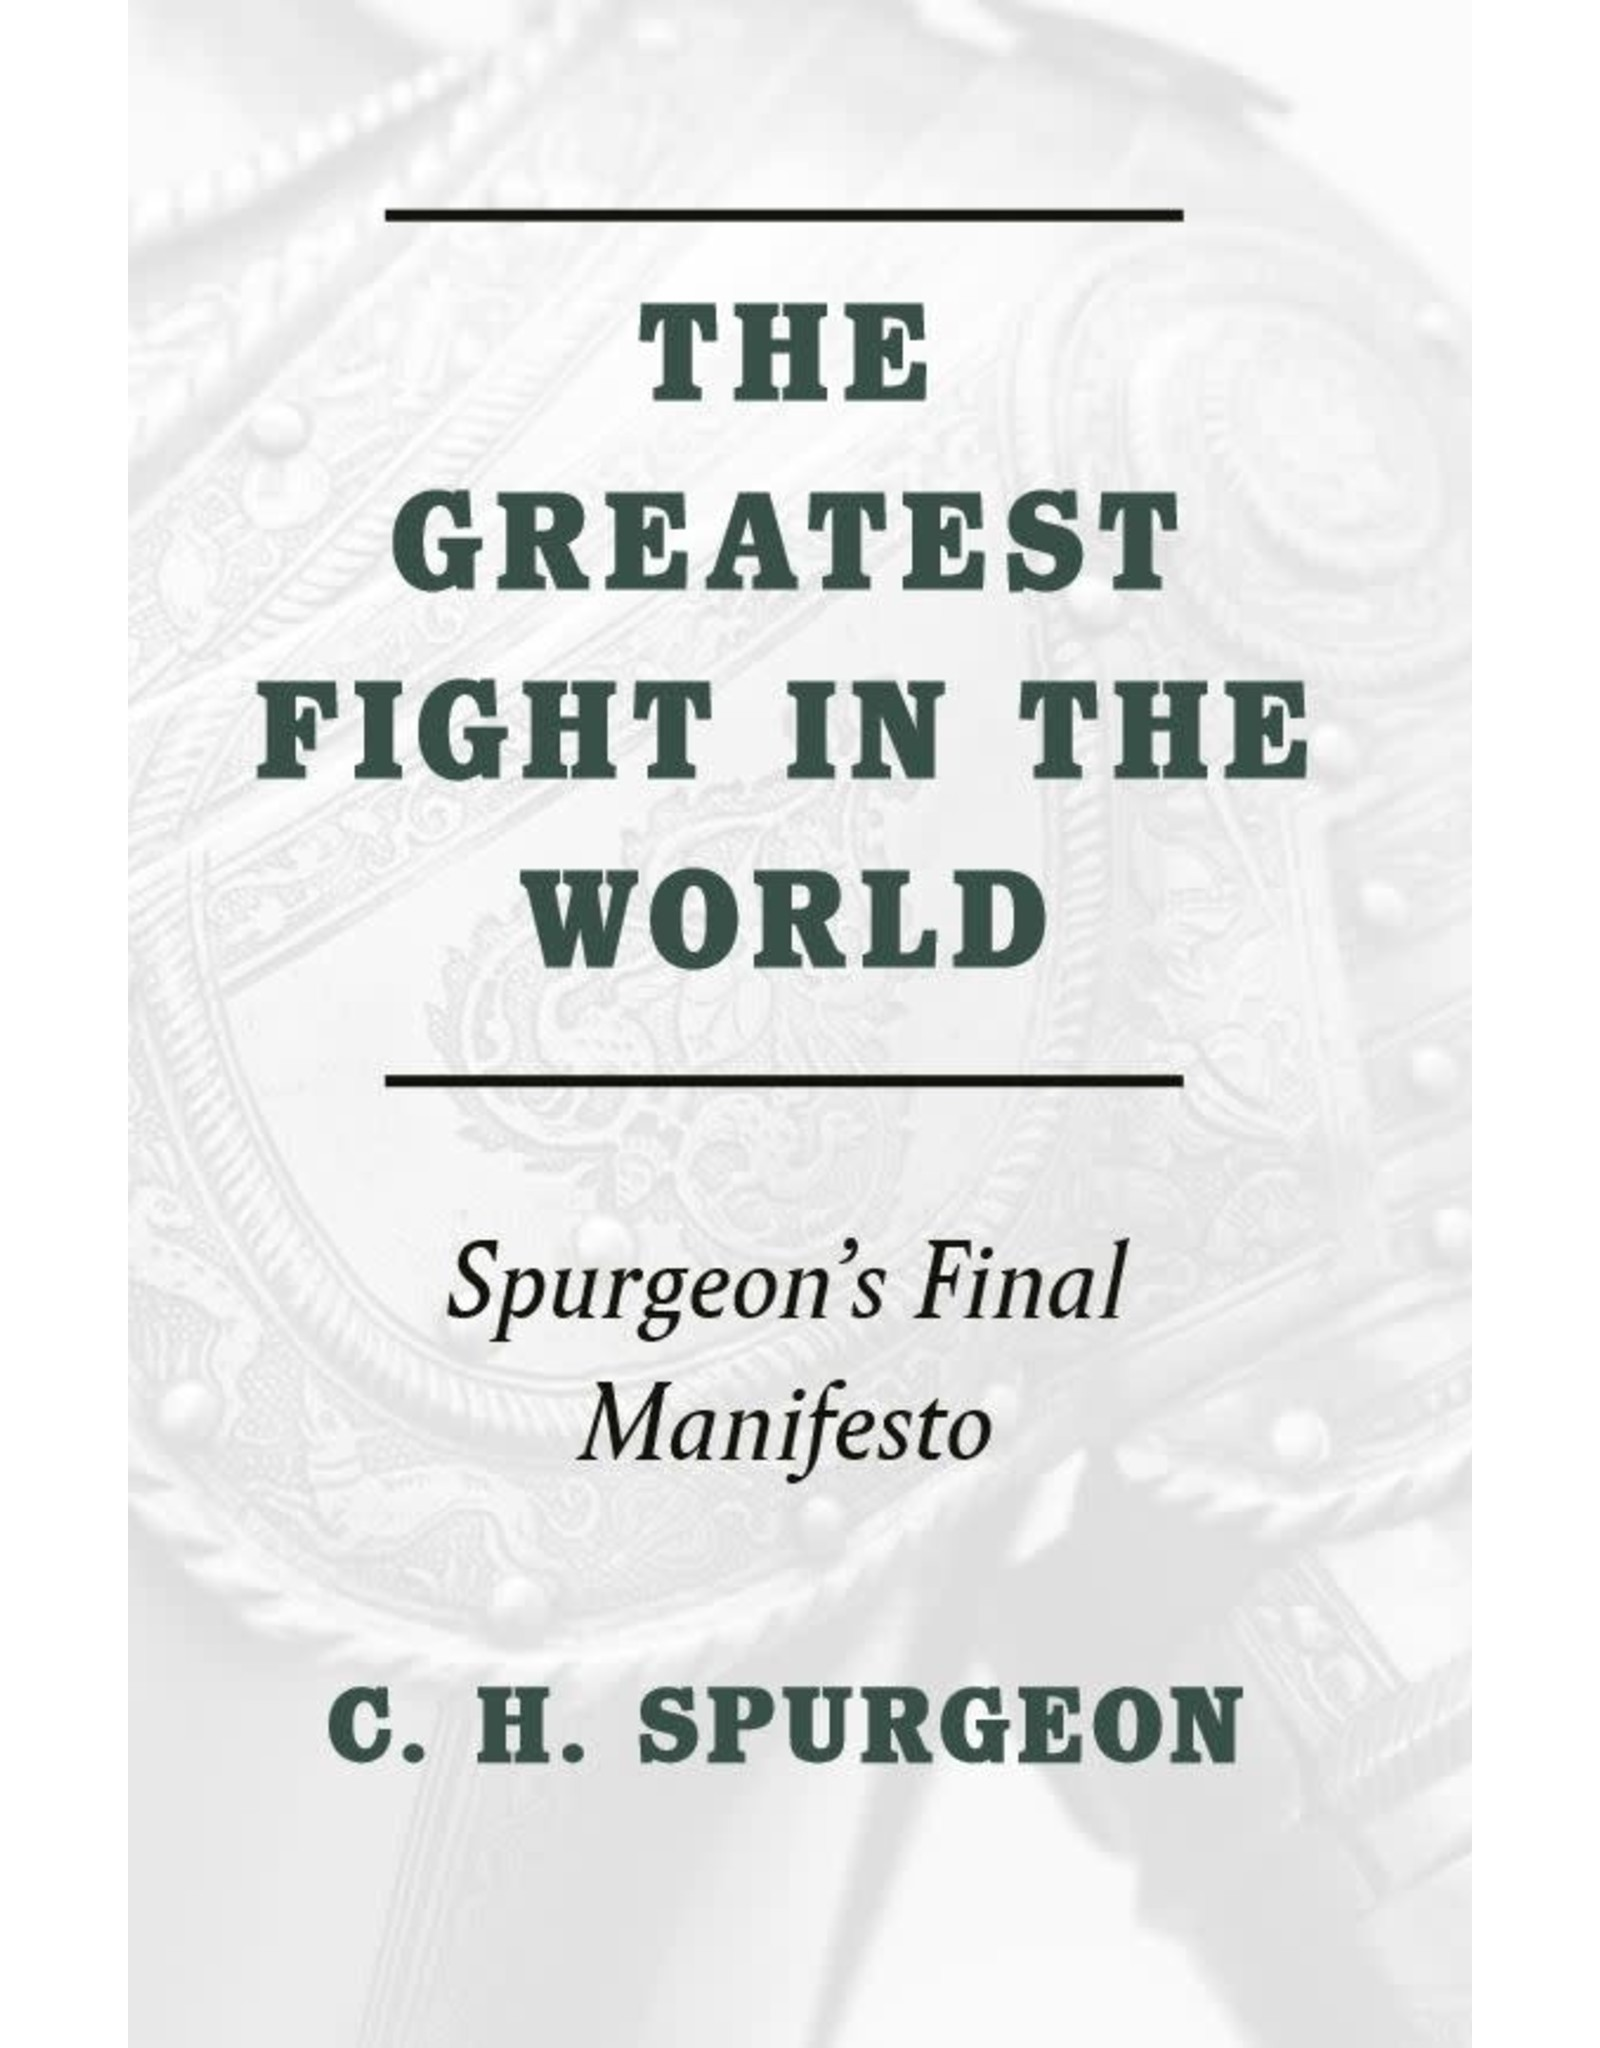 Spurgeon The Greatest Fight in the World